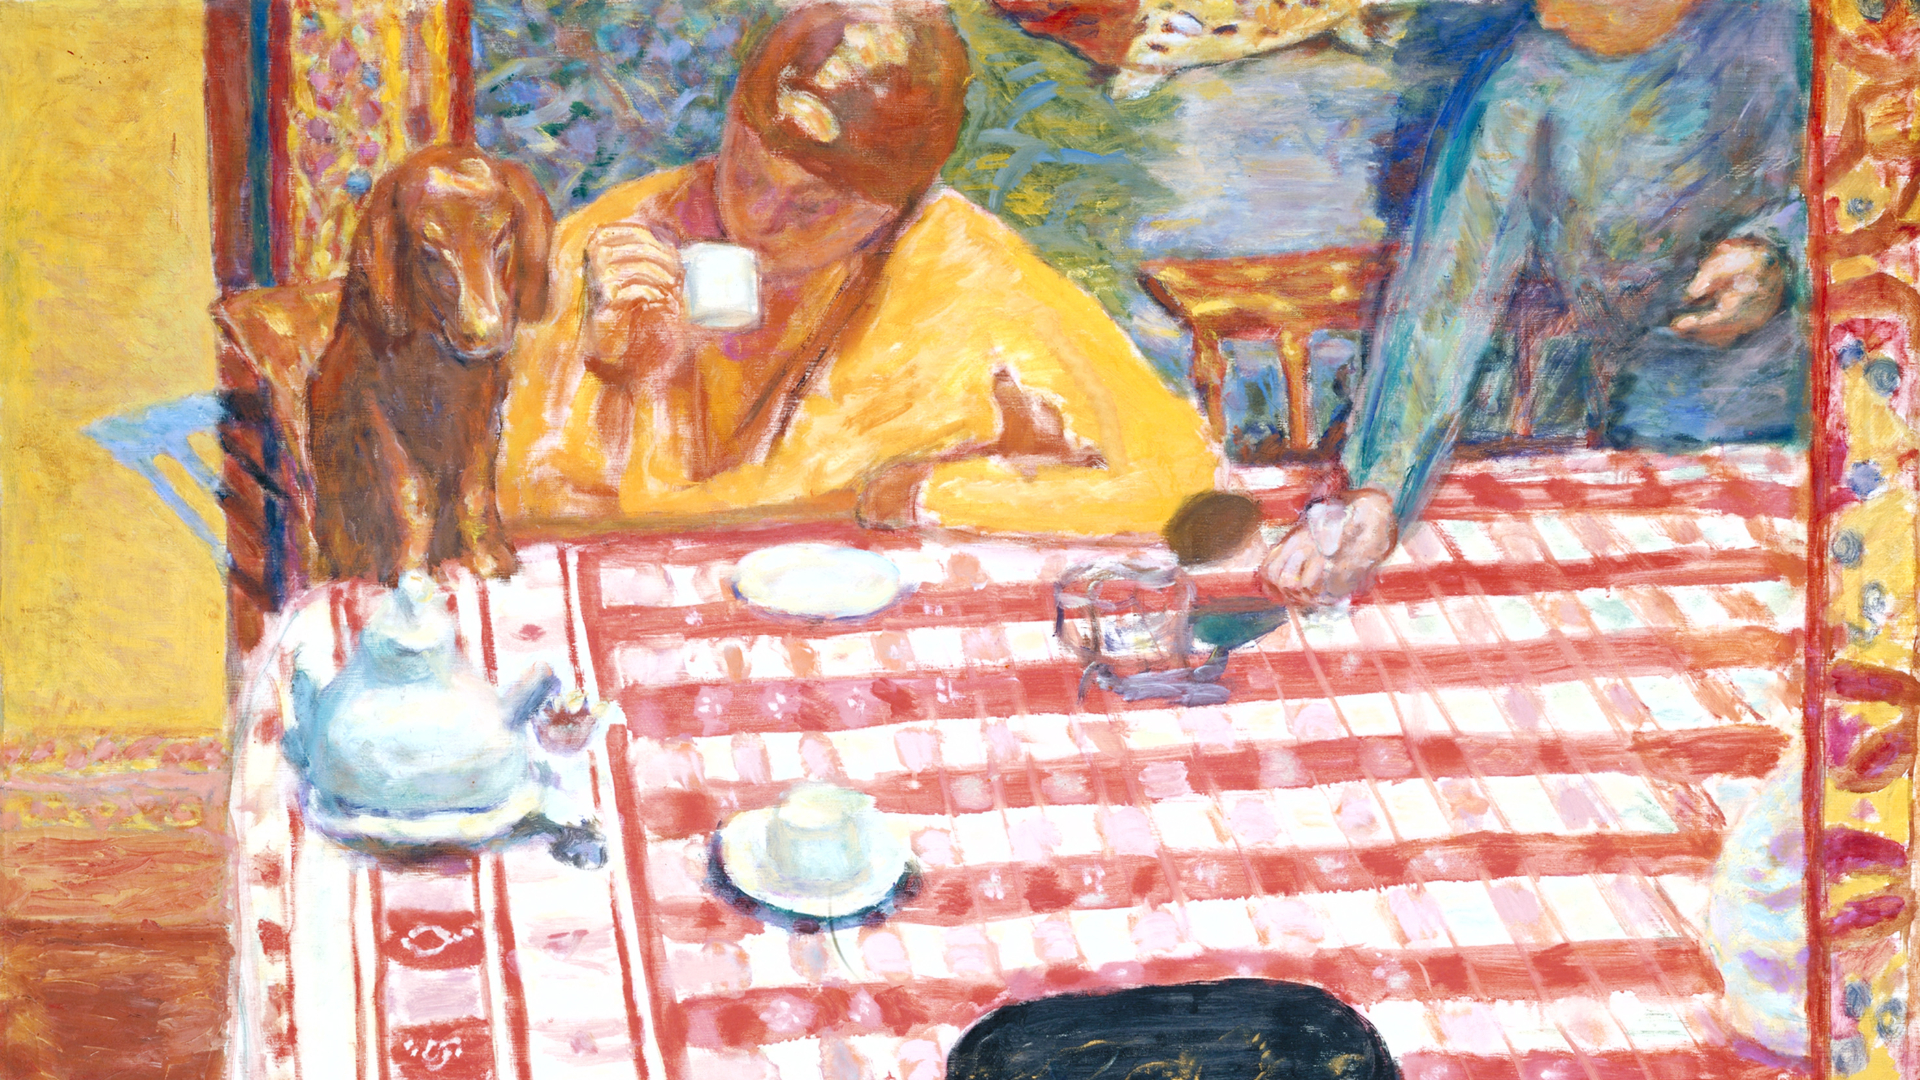 Coffee by Bonnard as part of the Pierre Bonnard exhibition at Tate Modern